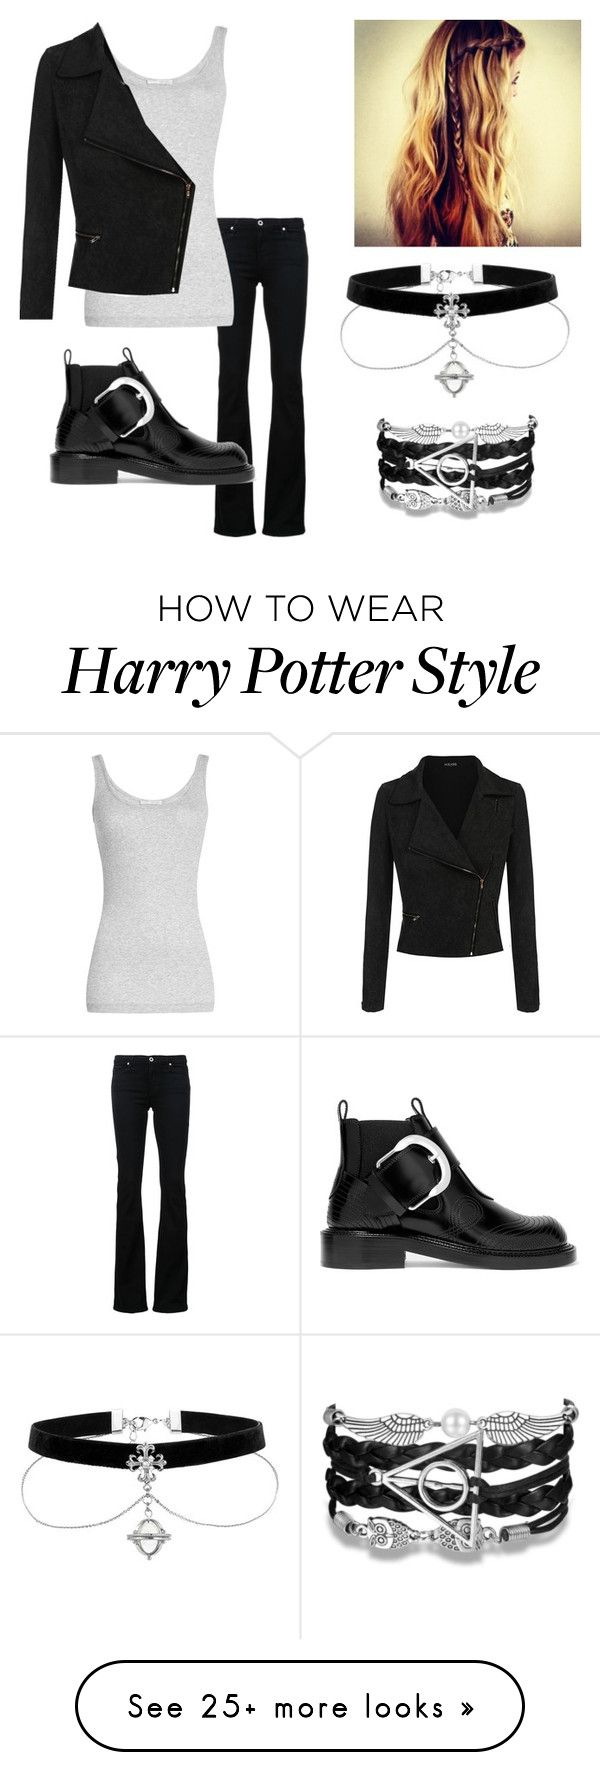 """Untitled #908"" by annabethjames on Polyvore featuring AG Adriano Goldschmied, Vince and Maison Margiela"